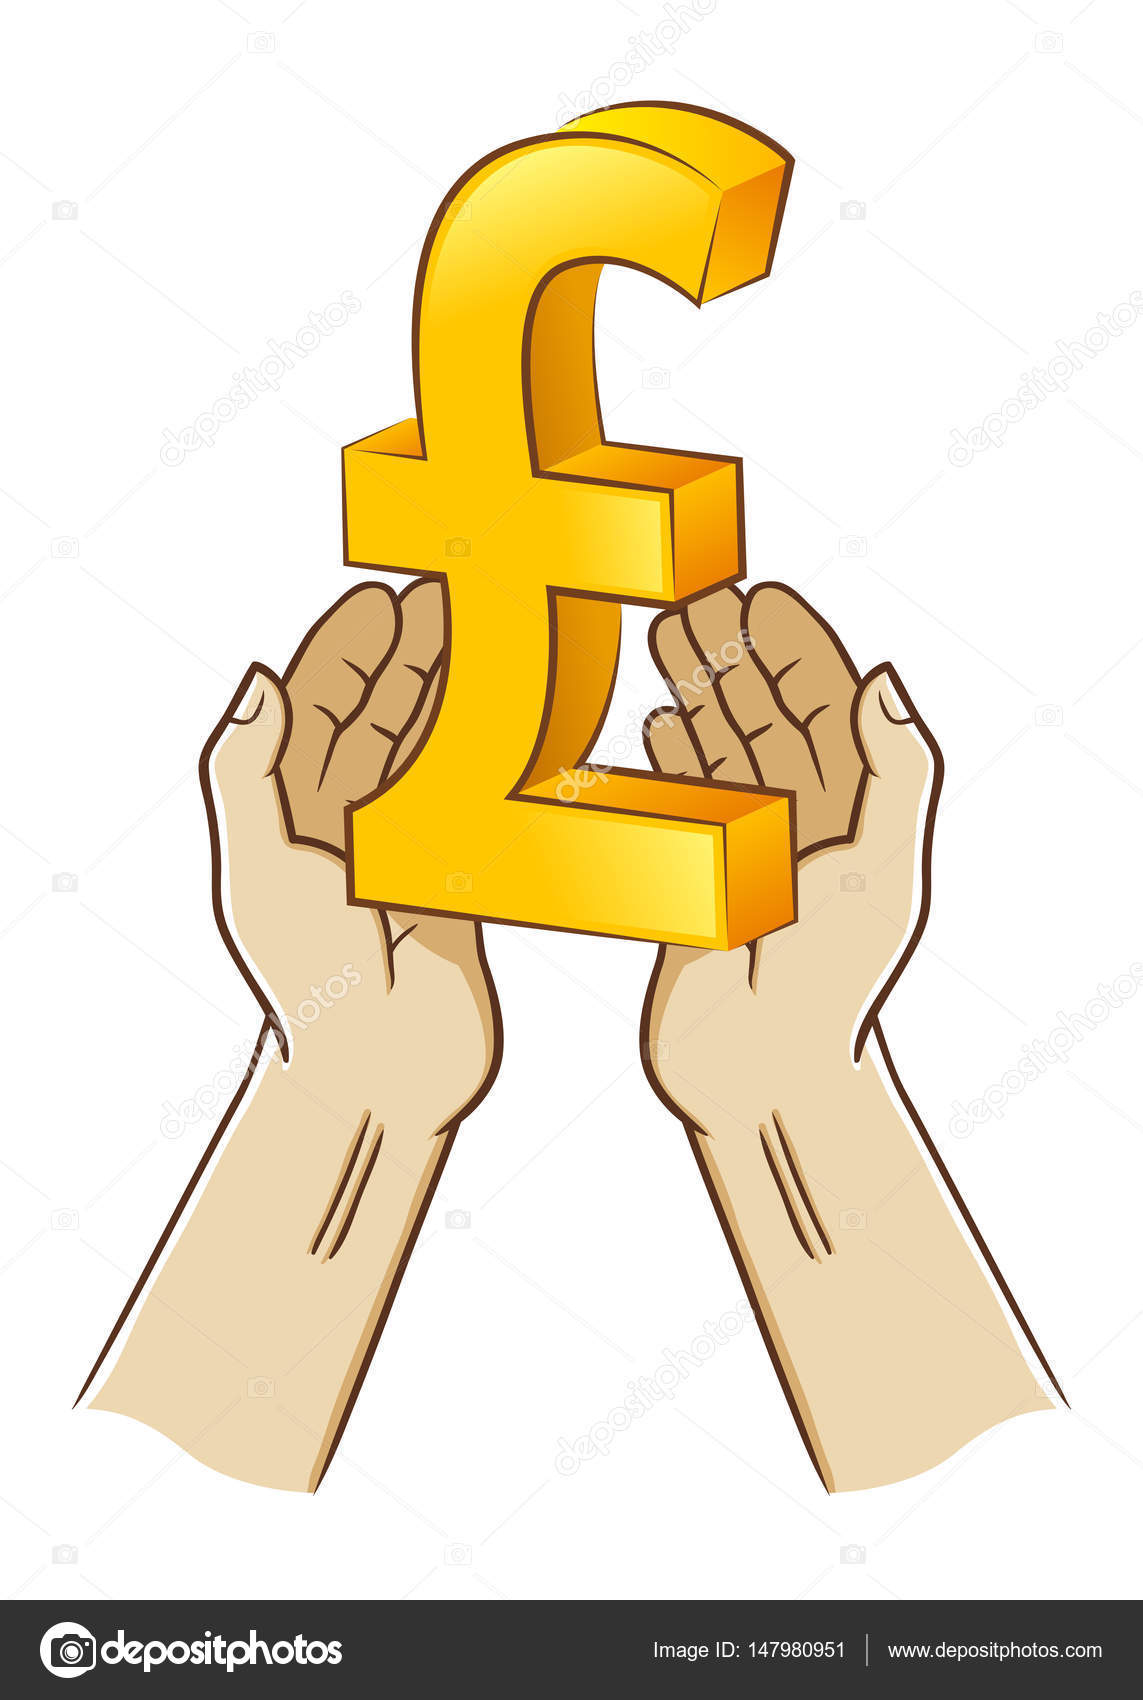 Two hand holding pound sterling currency symbol stock vector two hand holding pound sterling currency symbol stock vector biocorpaavc Gallery